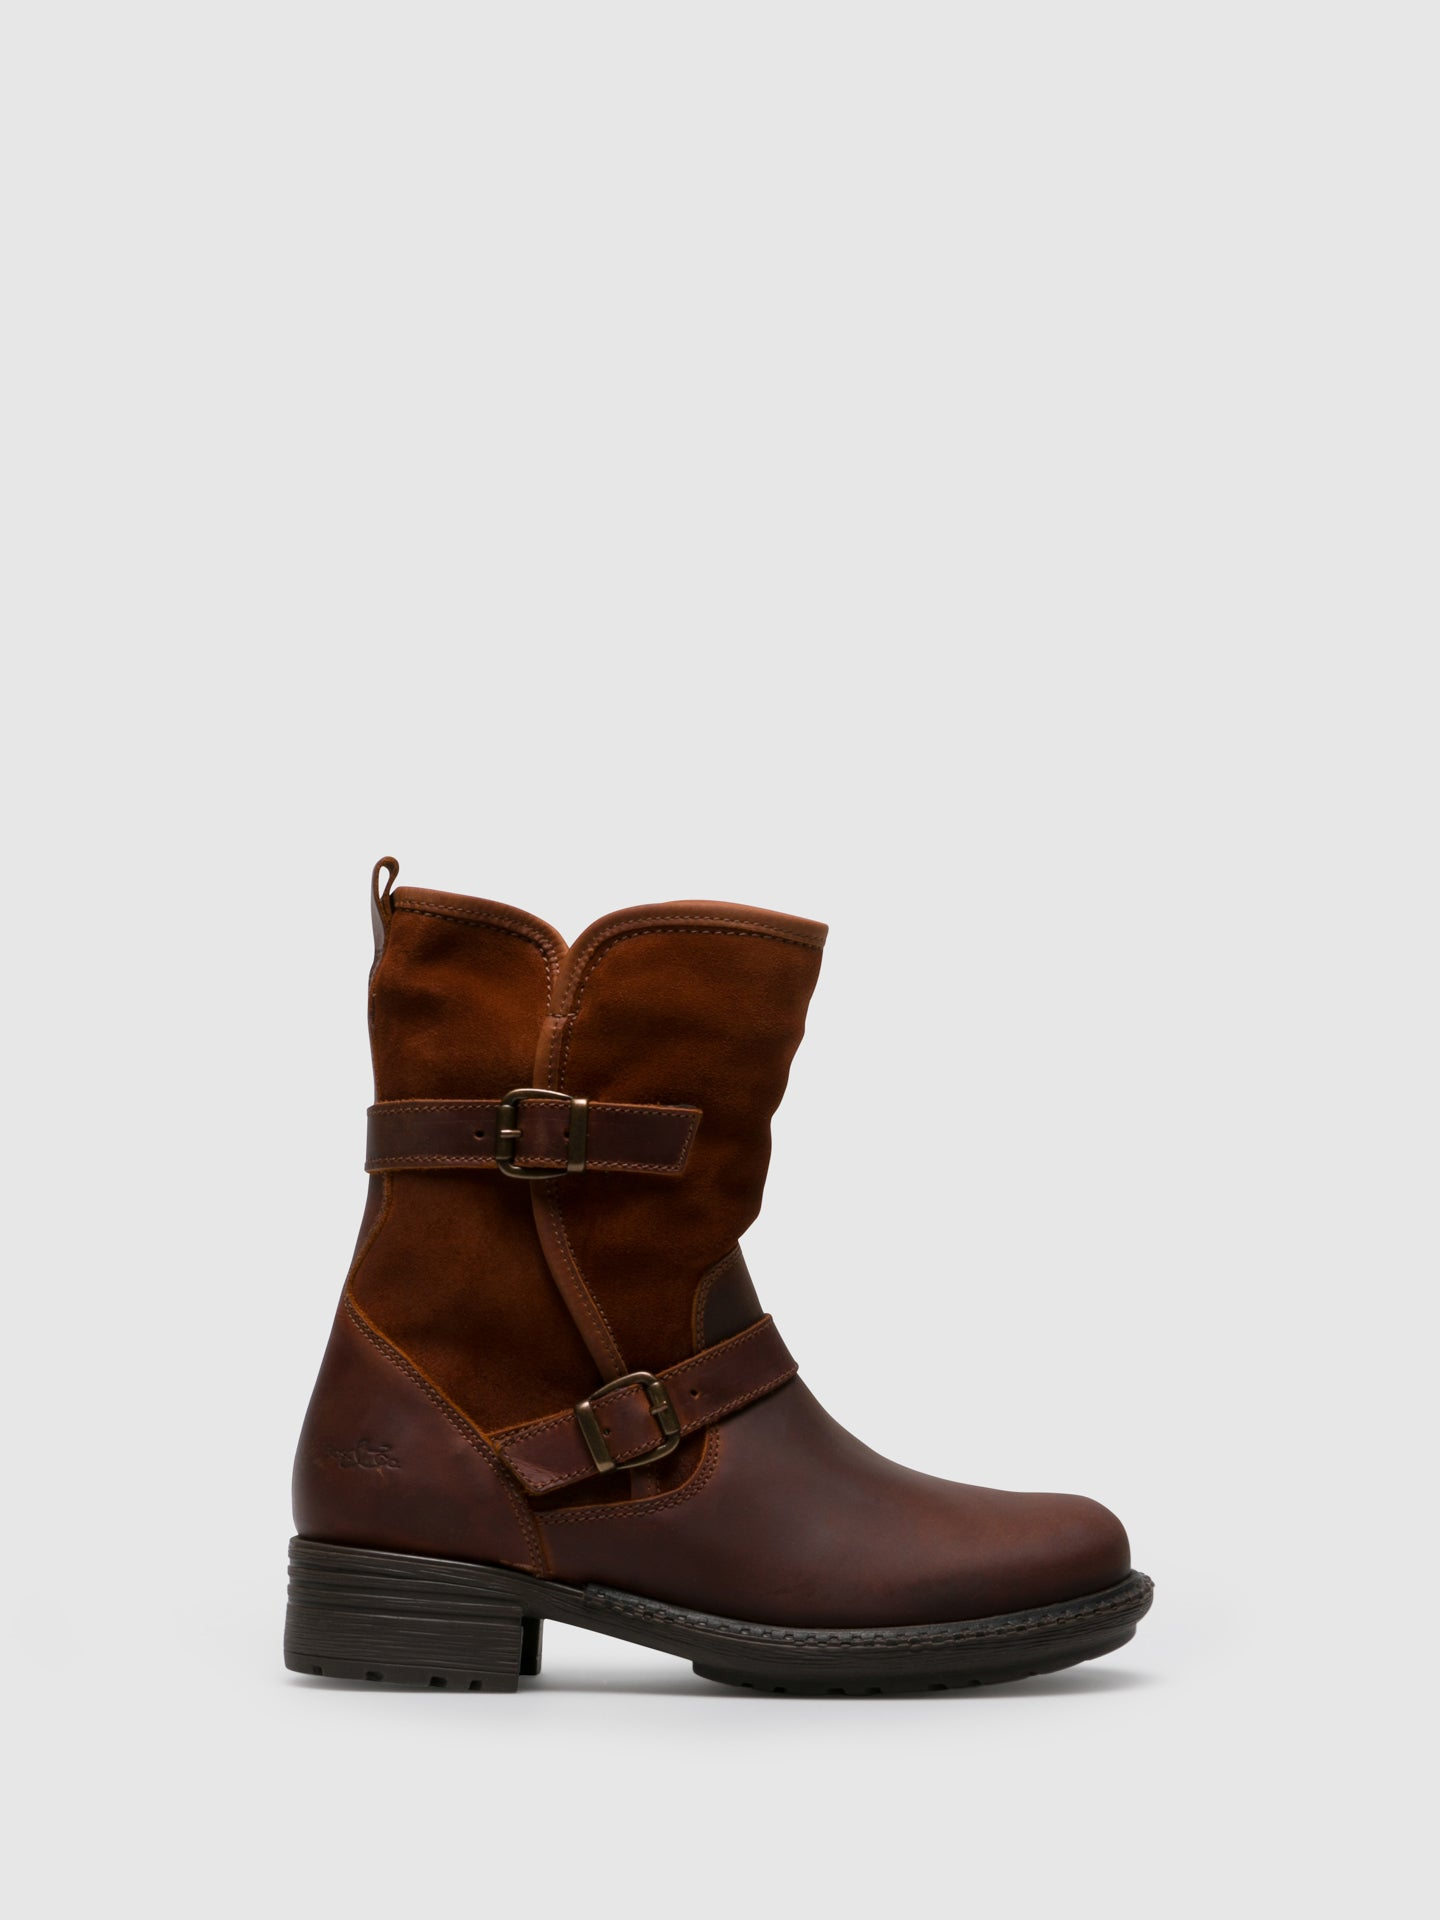 Bos&Co DarkRed Zip Up Boots